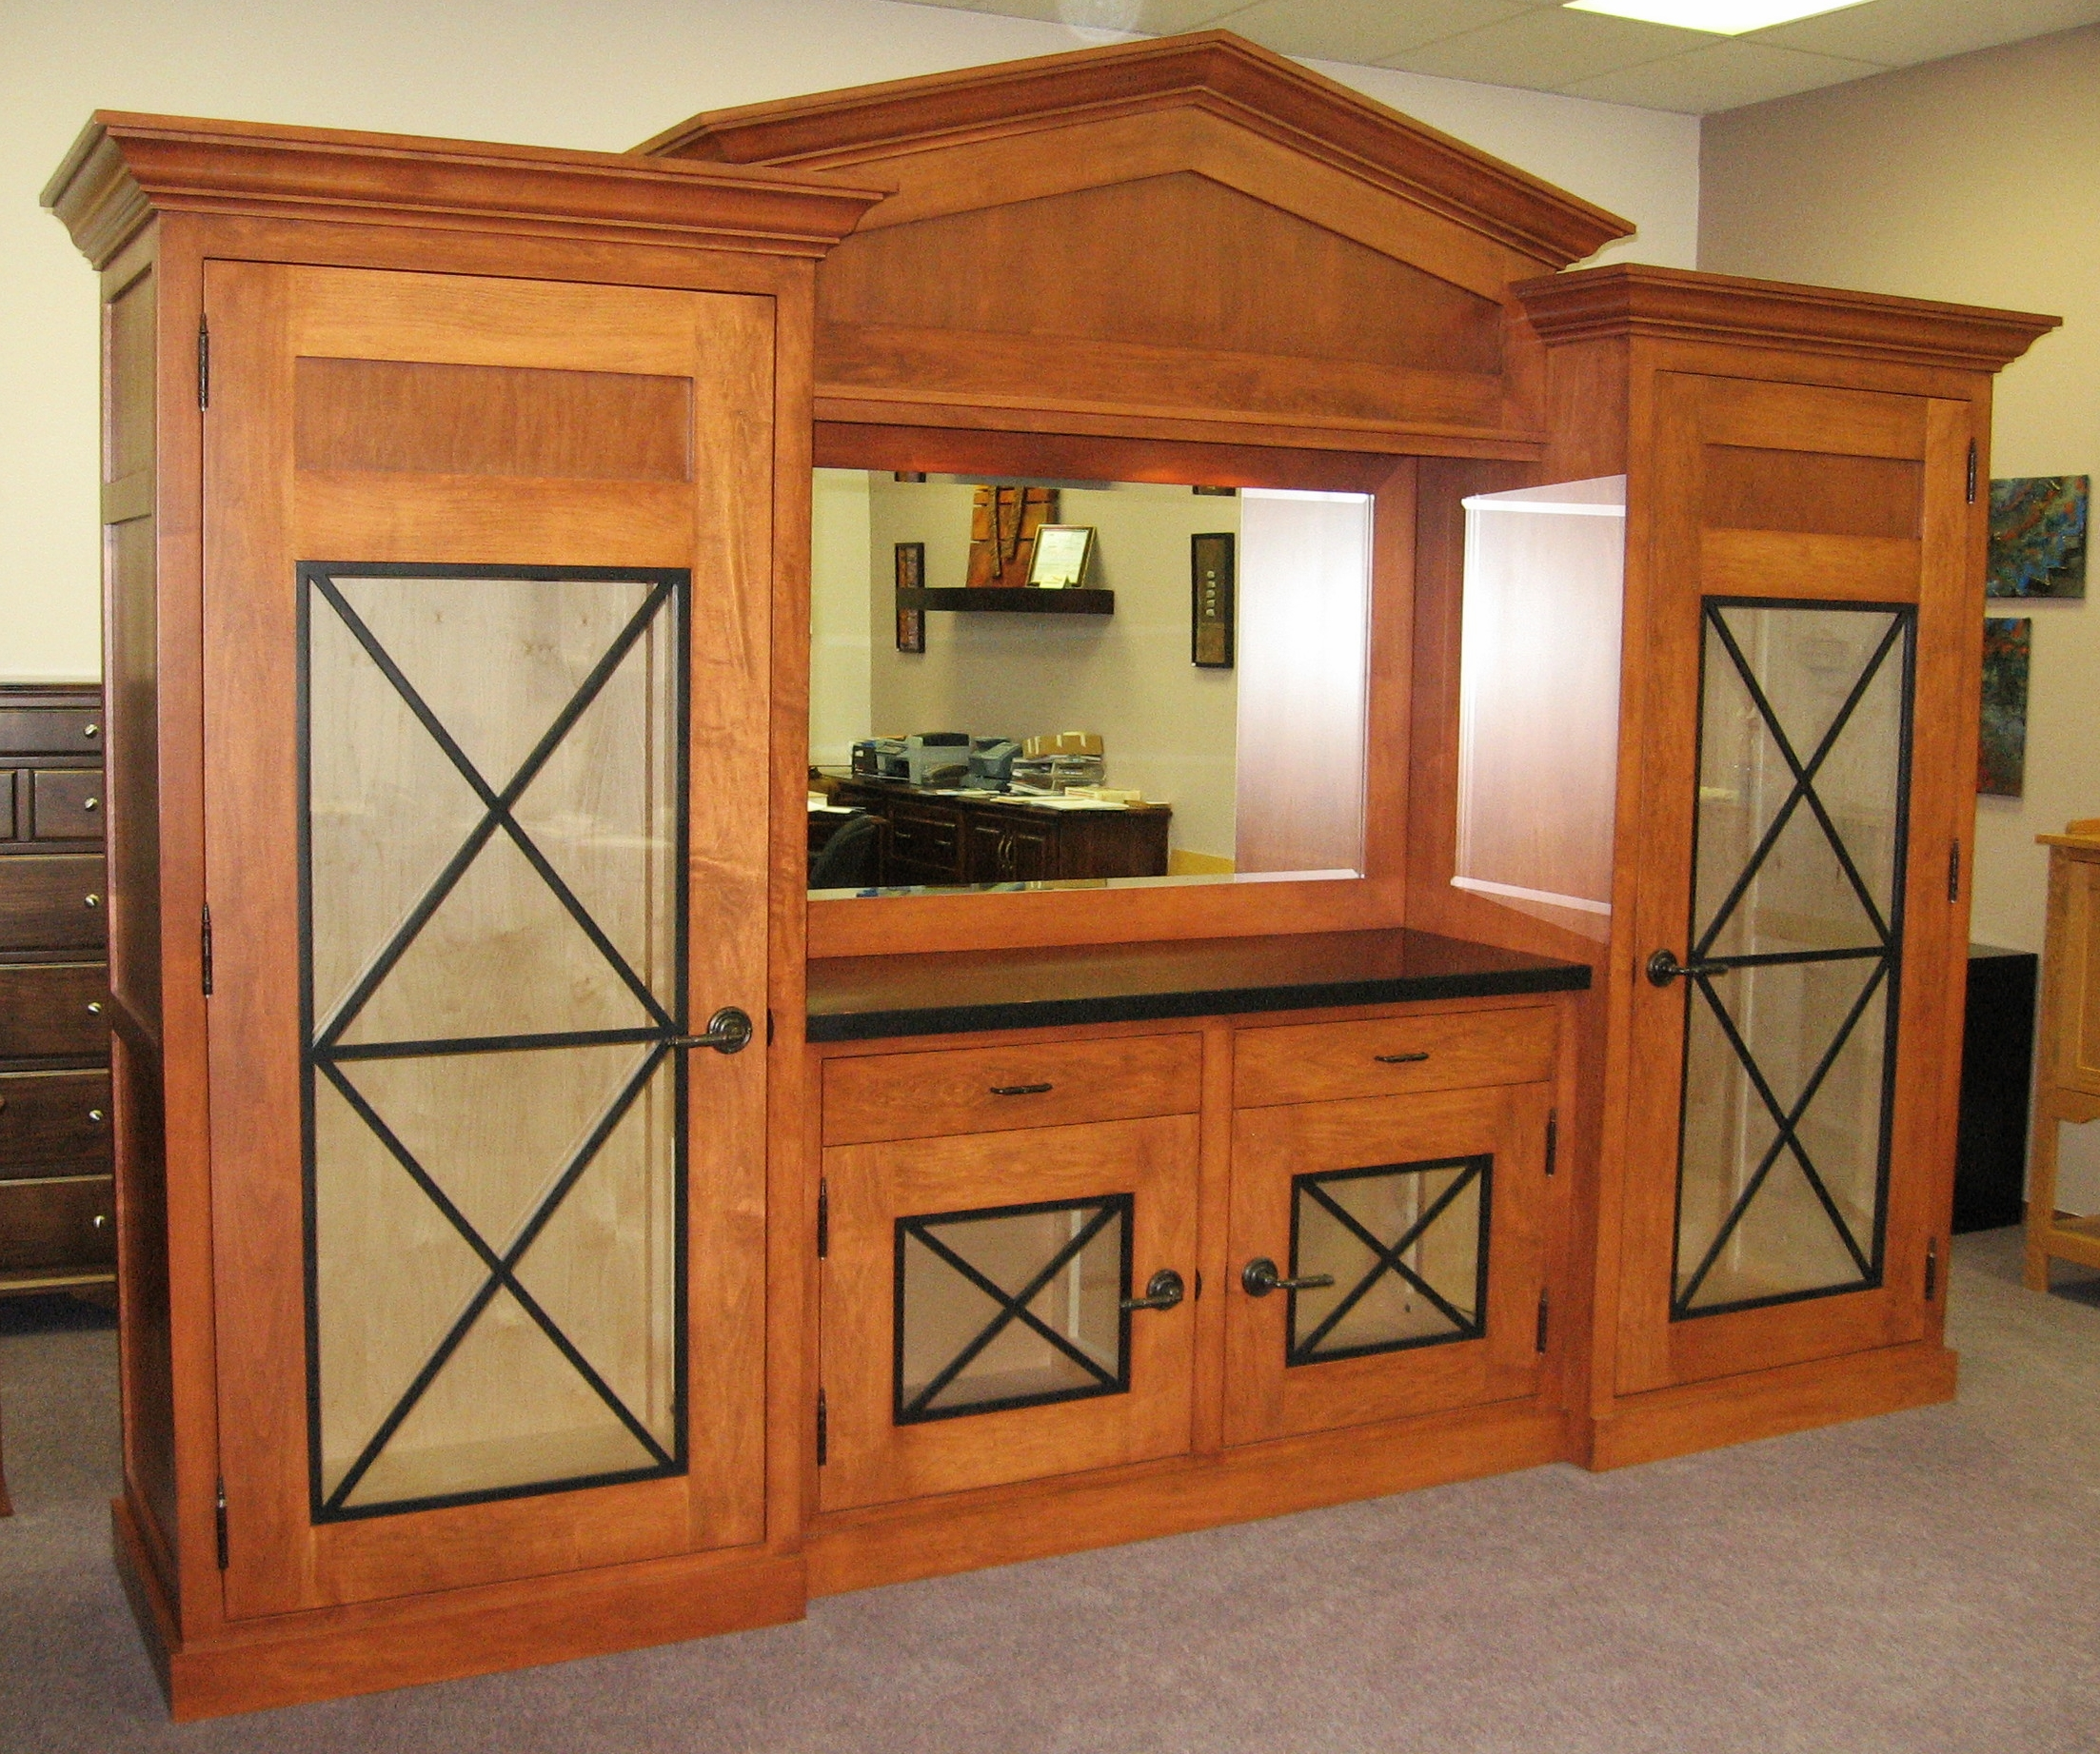 custom-built-bar-cabinetry-with-crown-moulding.JPG